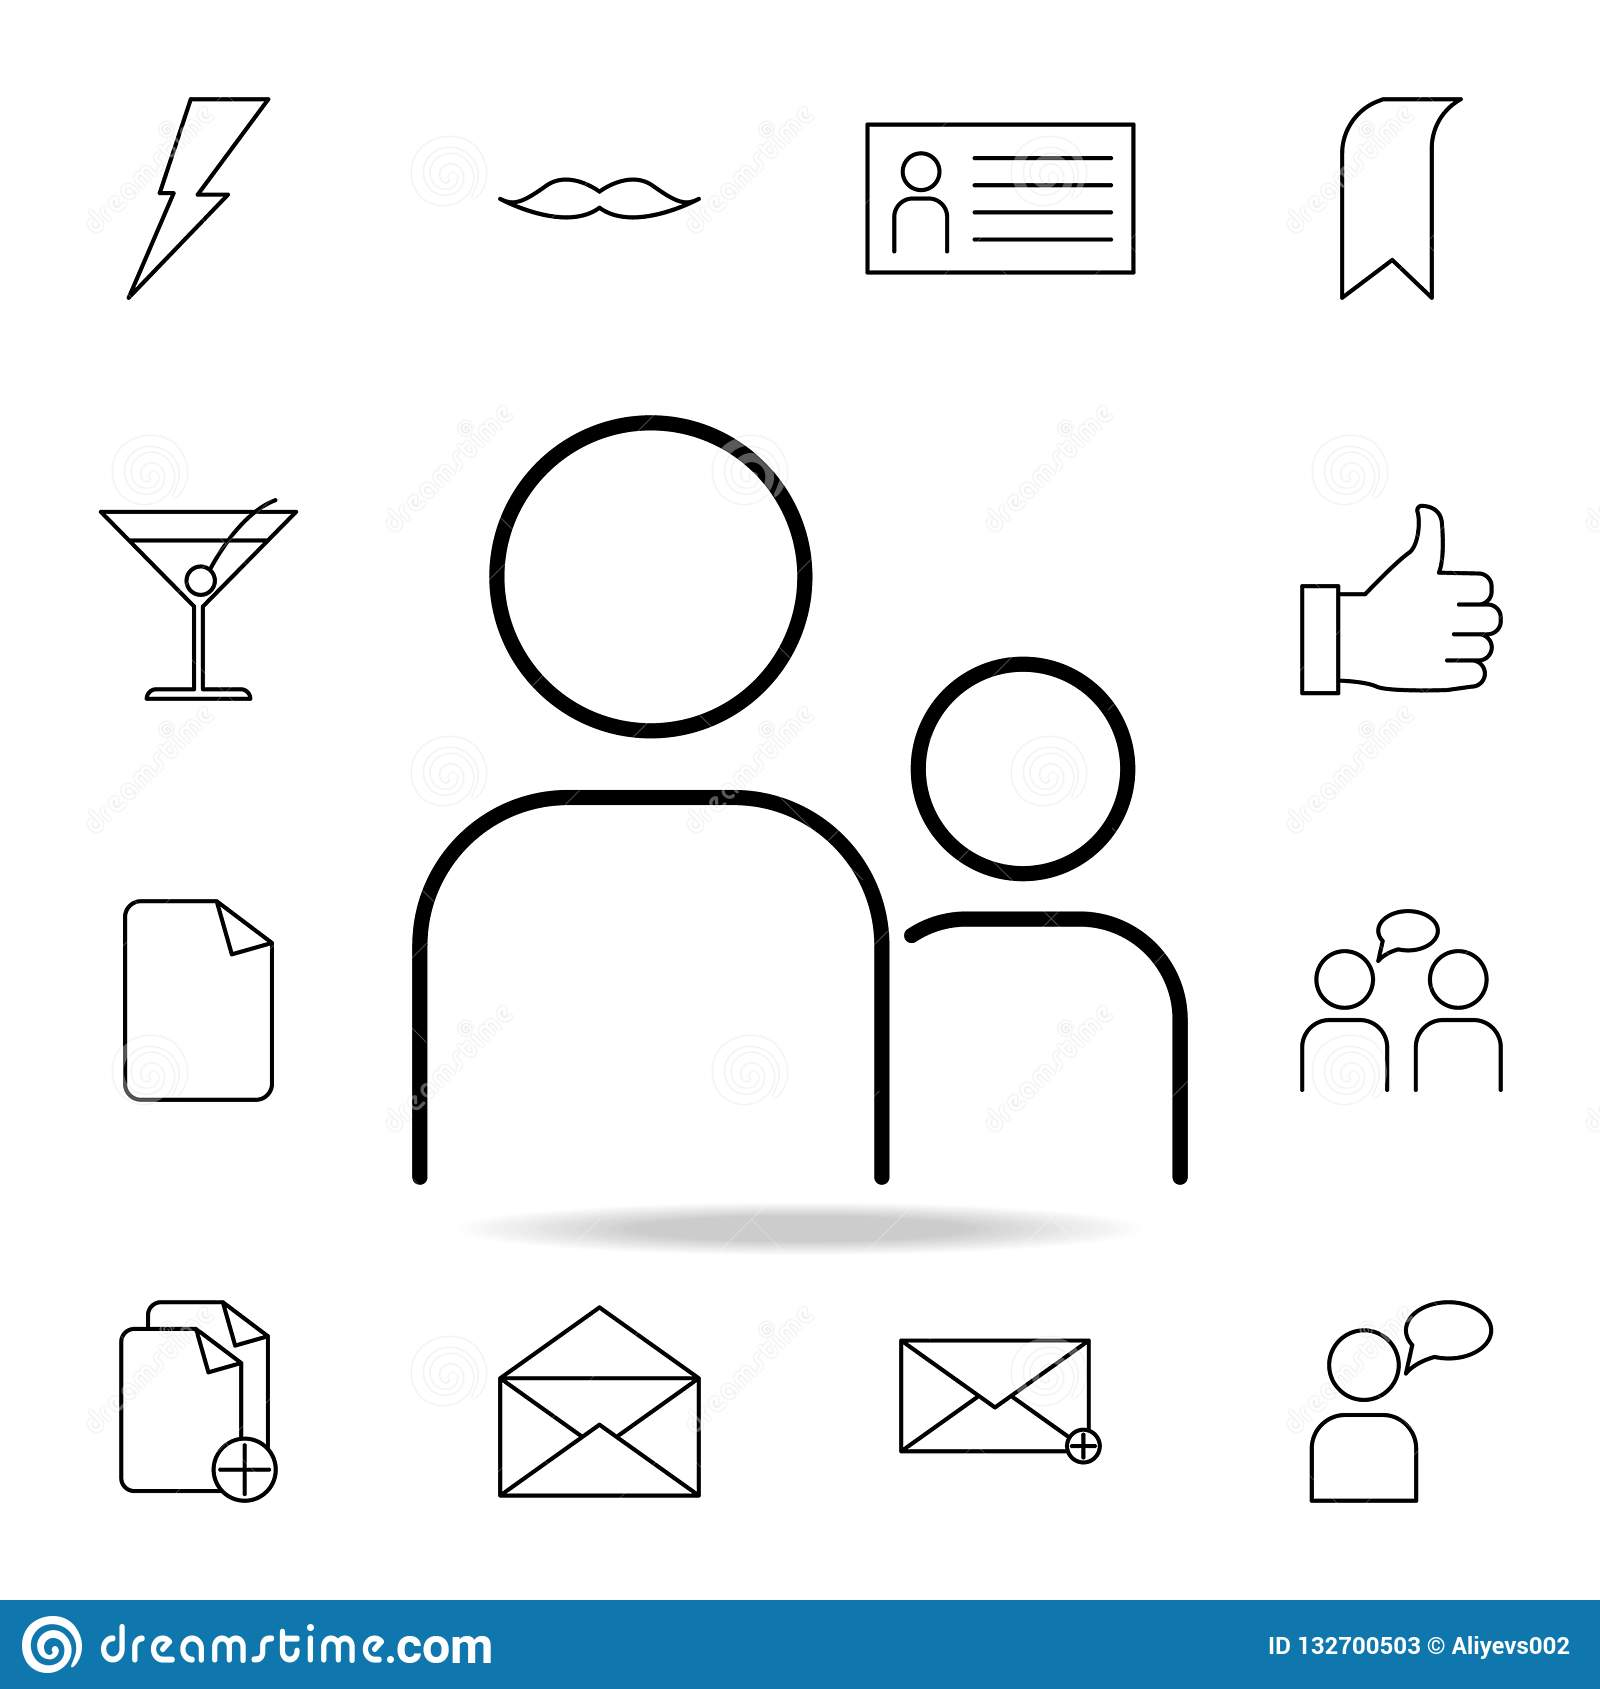 people icon. Detailed set of simple icons. Premium graphic design. One of the collection icons for websites, web design, mobile